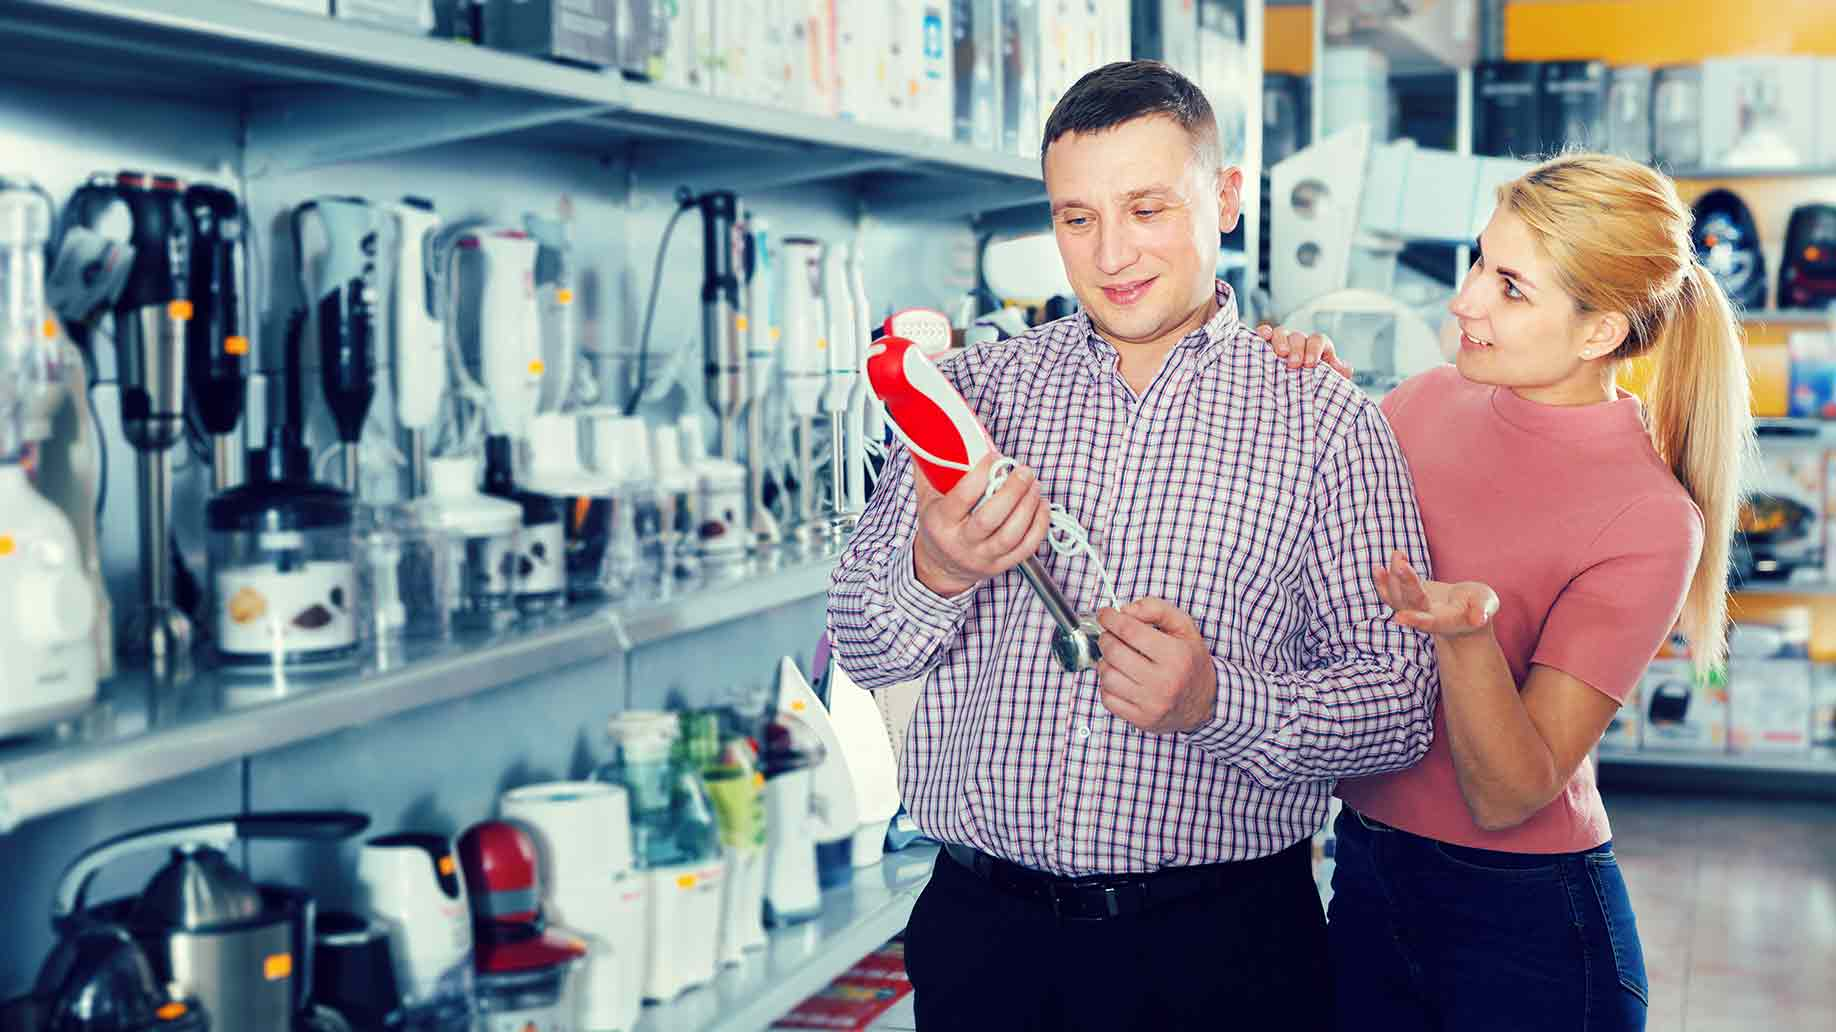 couple buying new blender in household appliances shop